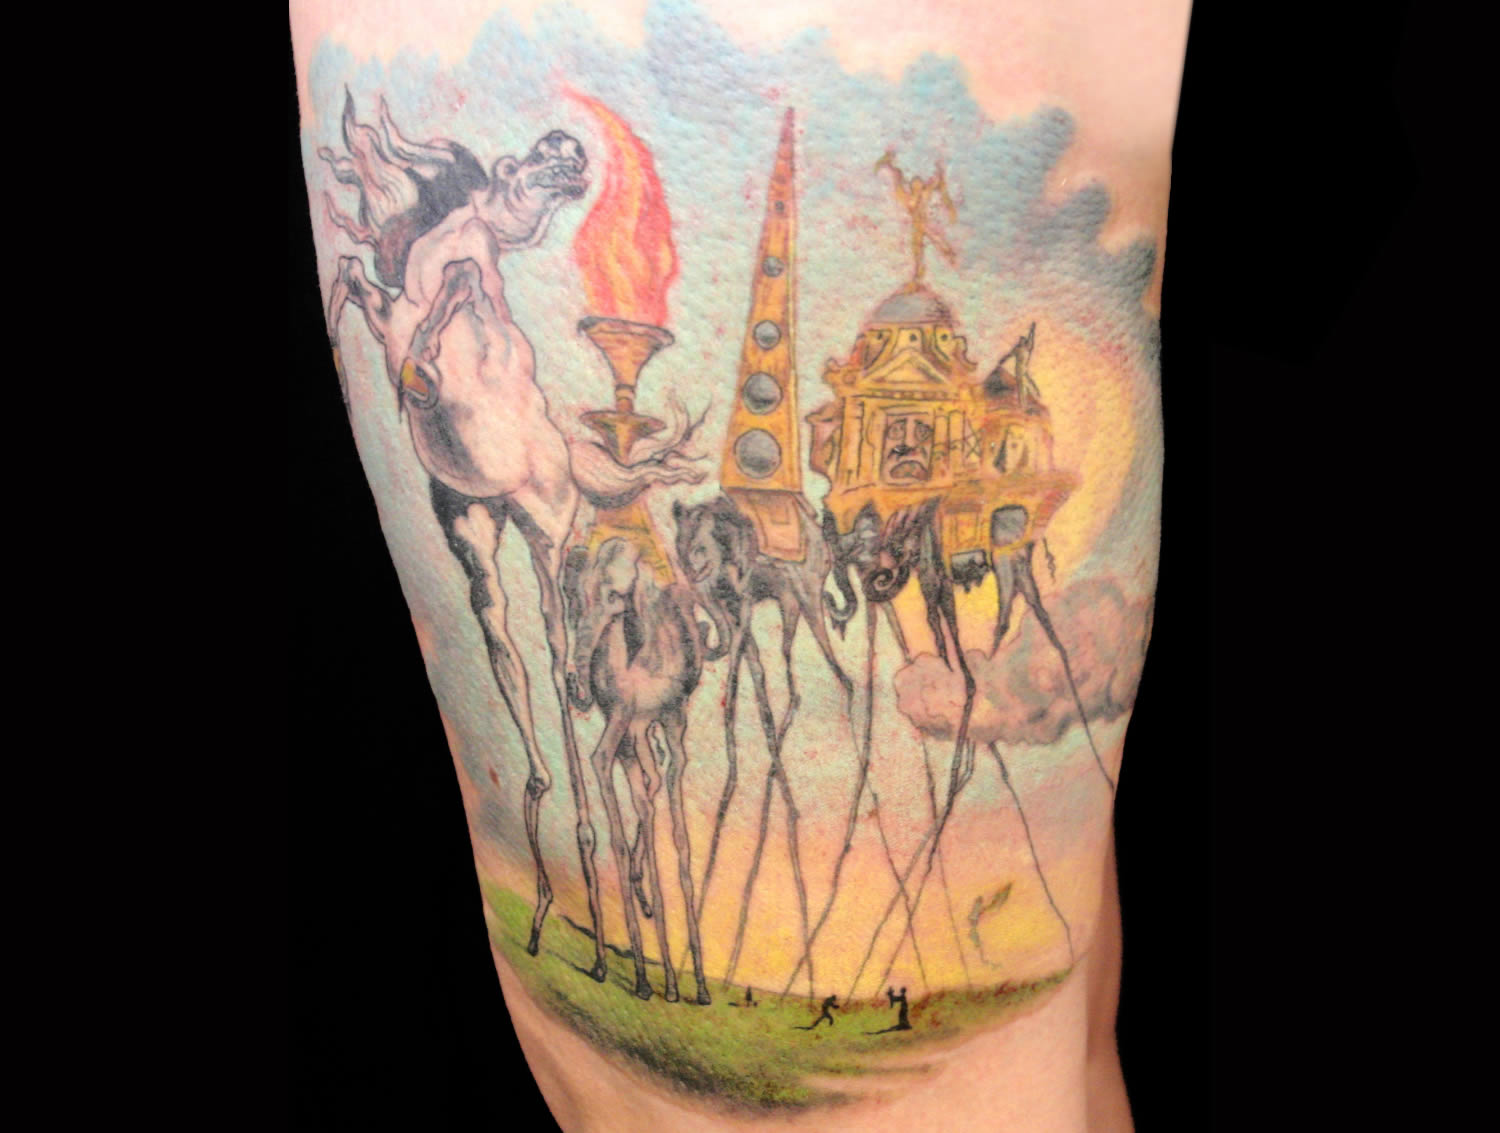 The Temptation of St. Anthony, tattoo by jamie macpherson